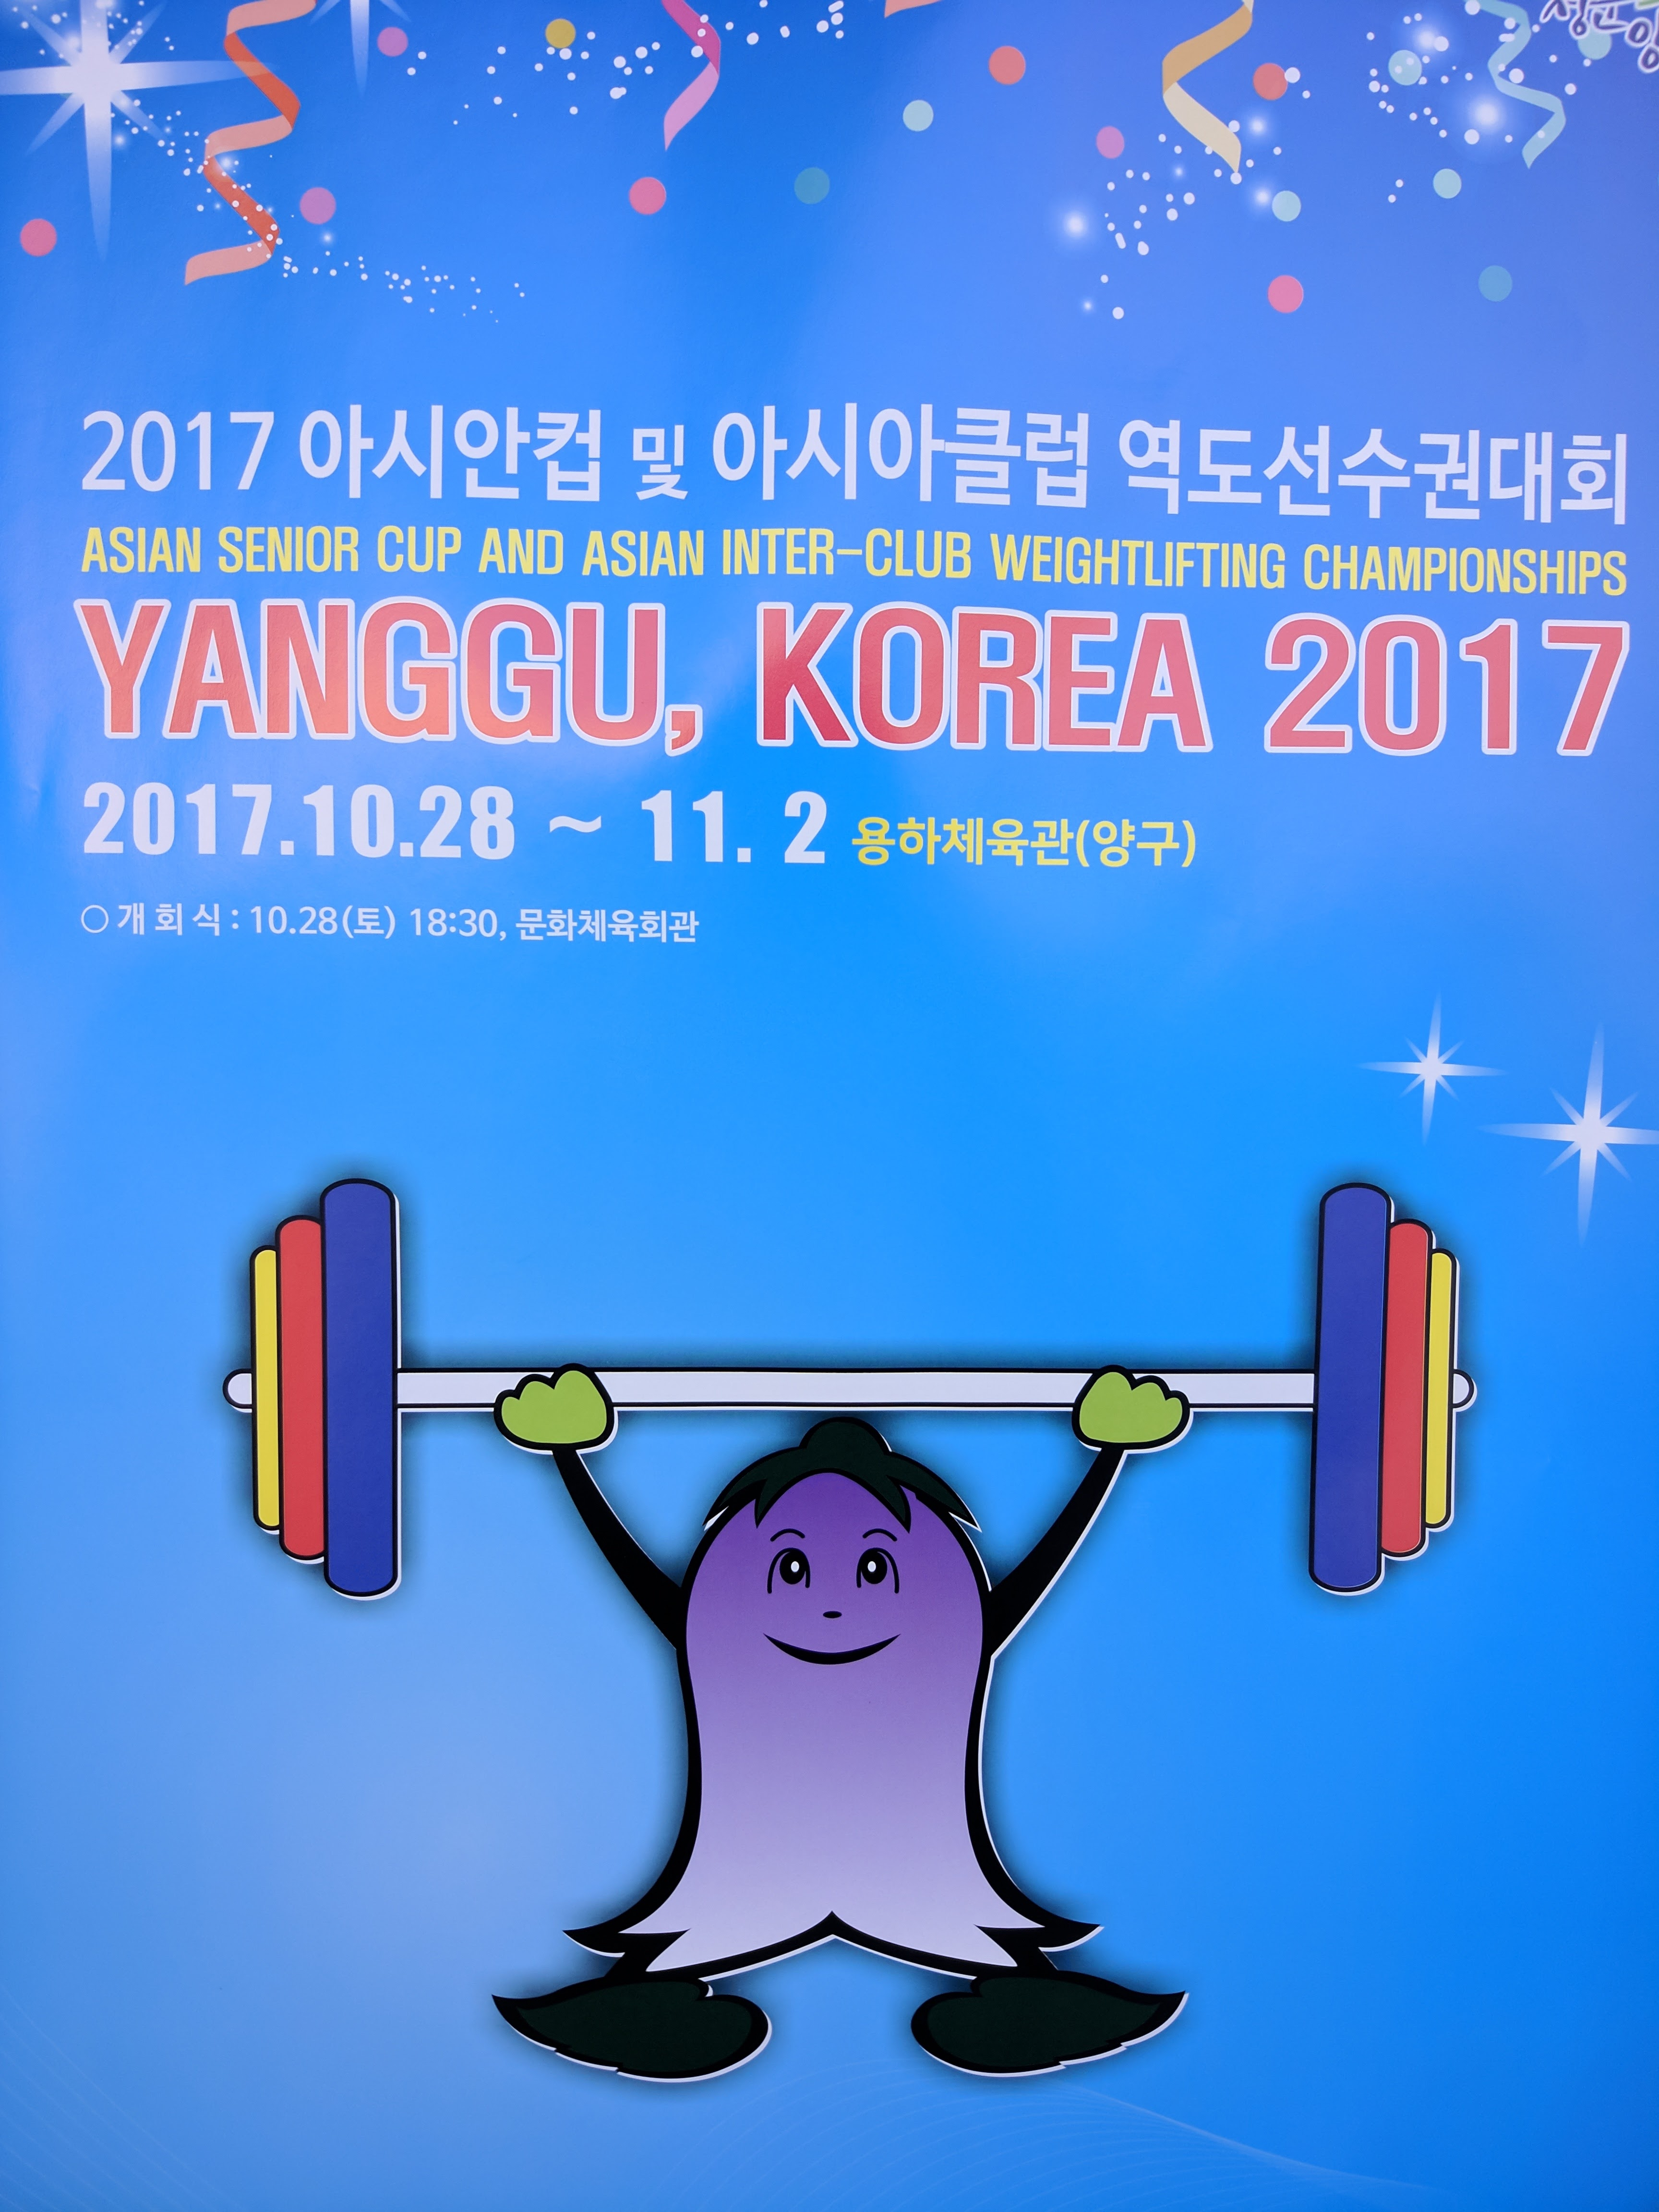 http://awfederation.com/results/226-result-asian-cup-asian-inter-club-weightlifting-championships-in-yanggu-korea-28-october-2017